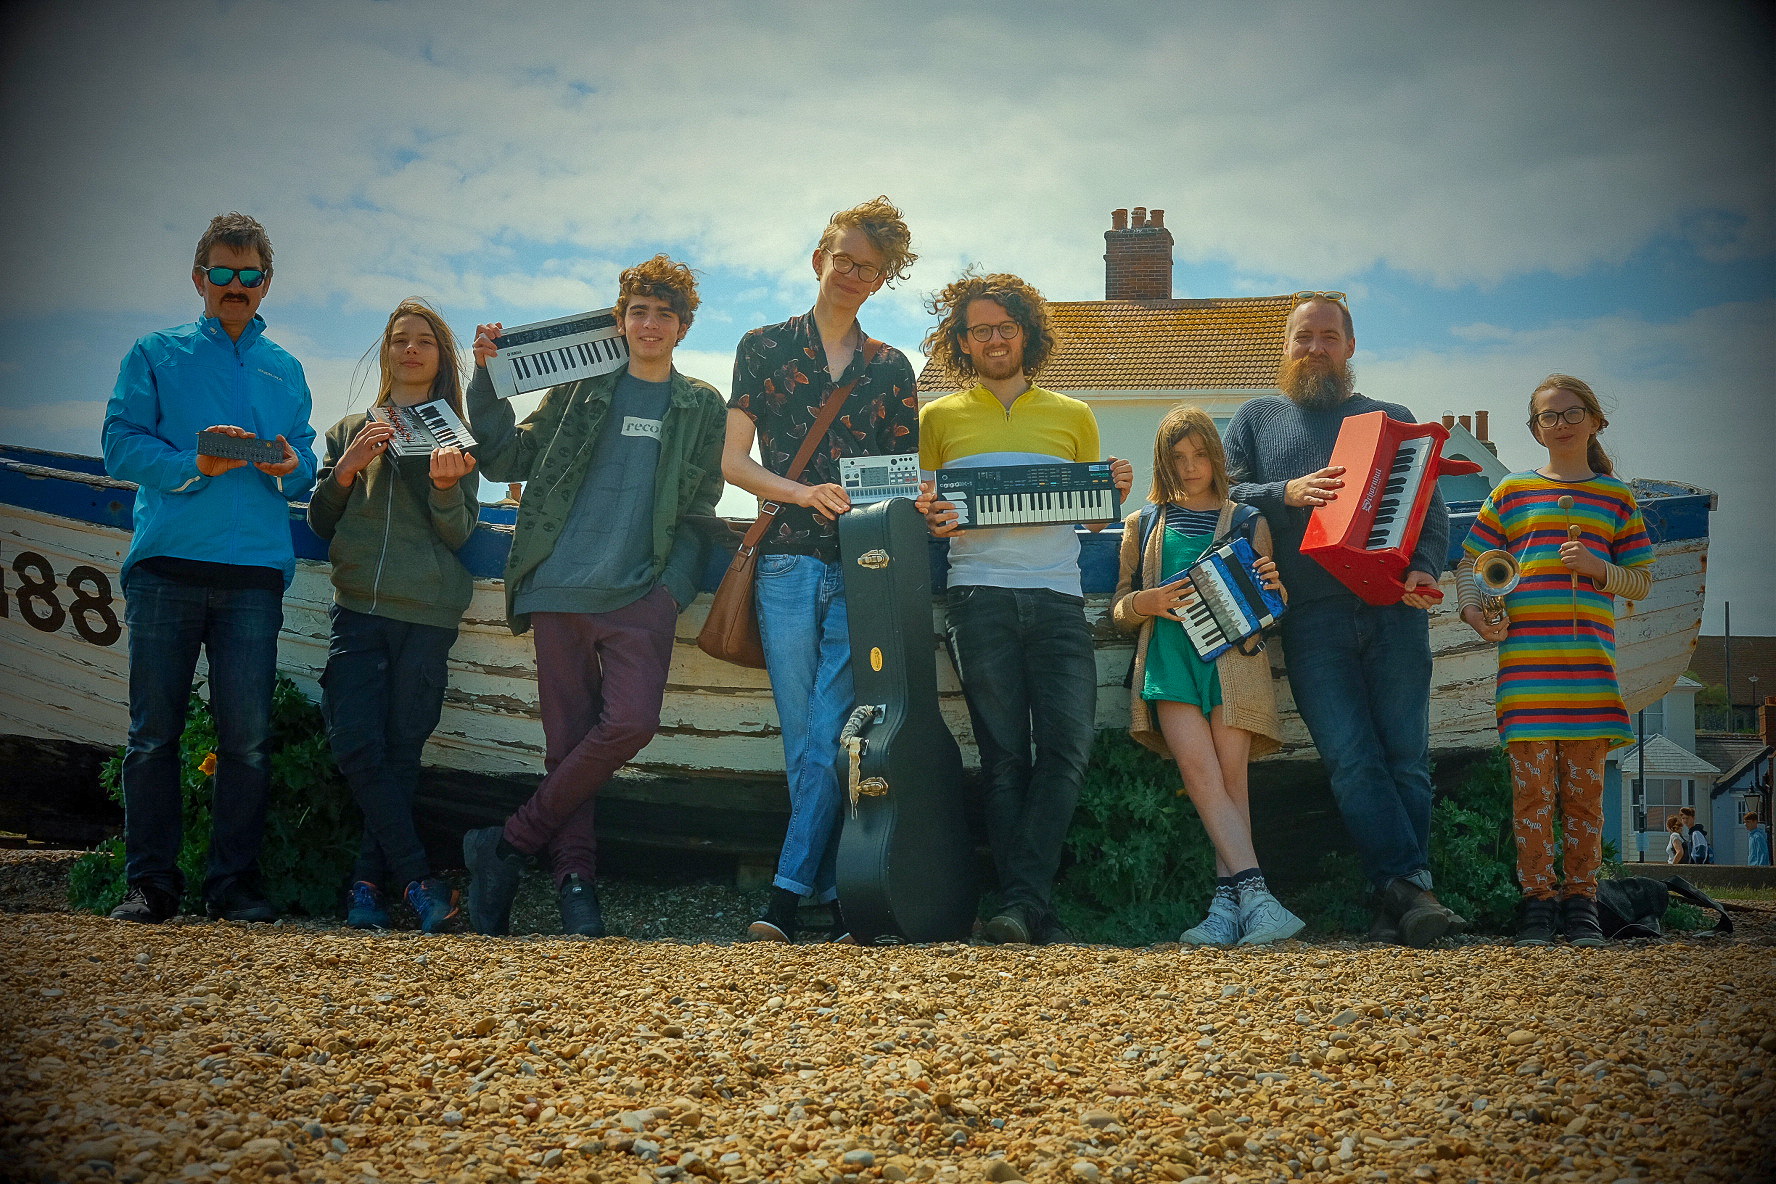 CLIP awarded £30,000 grant from Youth Music